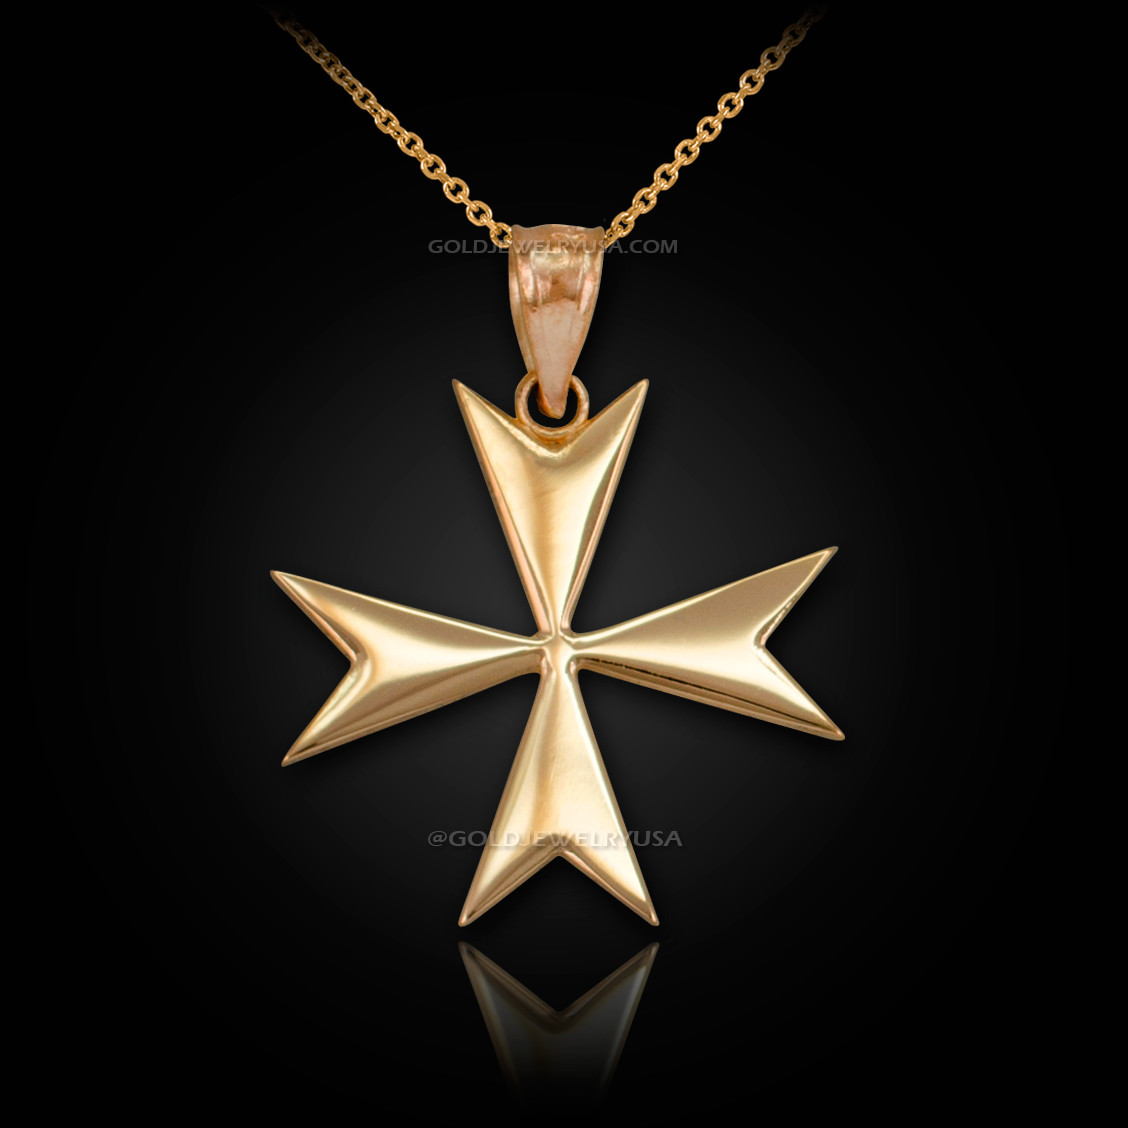 Gold maltese cross pendant necklace gold maltese crosss necklace mozeypictures Image collections